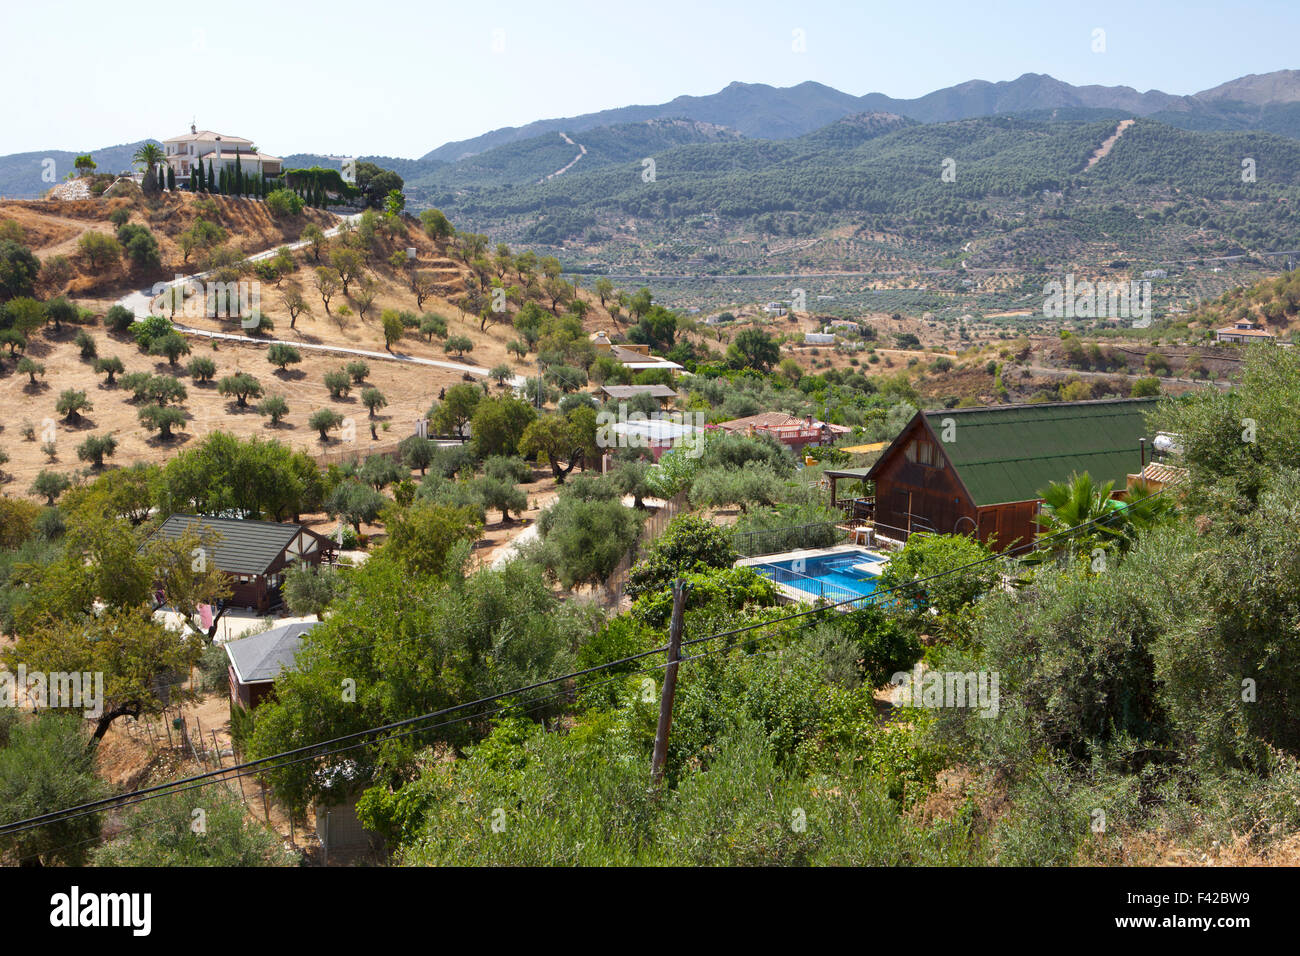 Country houses and countryside, Guaro, Malaga Province, Andalusia, Spain, Western Europe - Stock Image